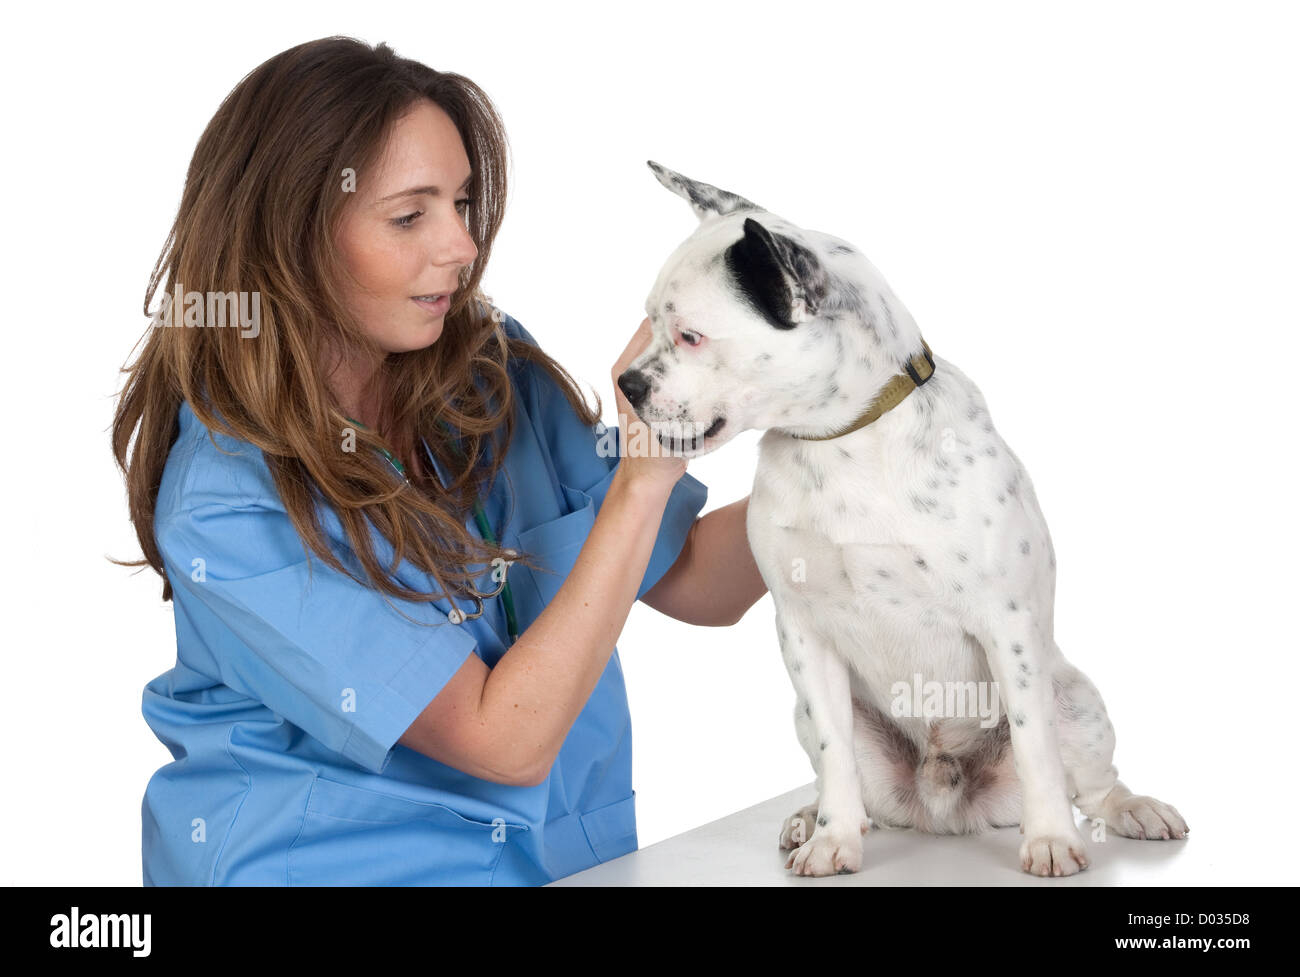 Veterinary with a dog for a review isolated on white background - Stock Image